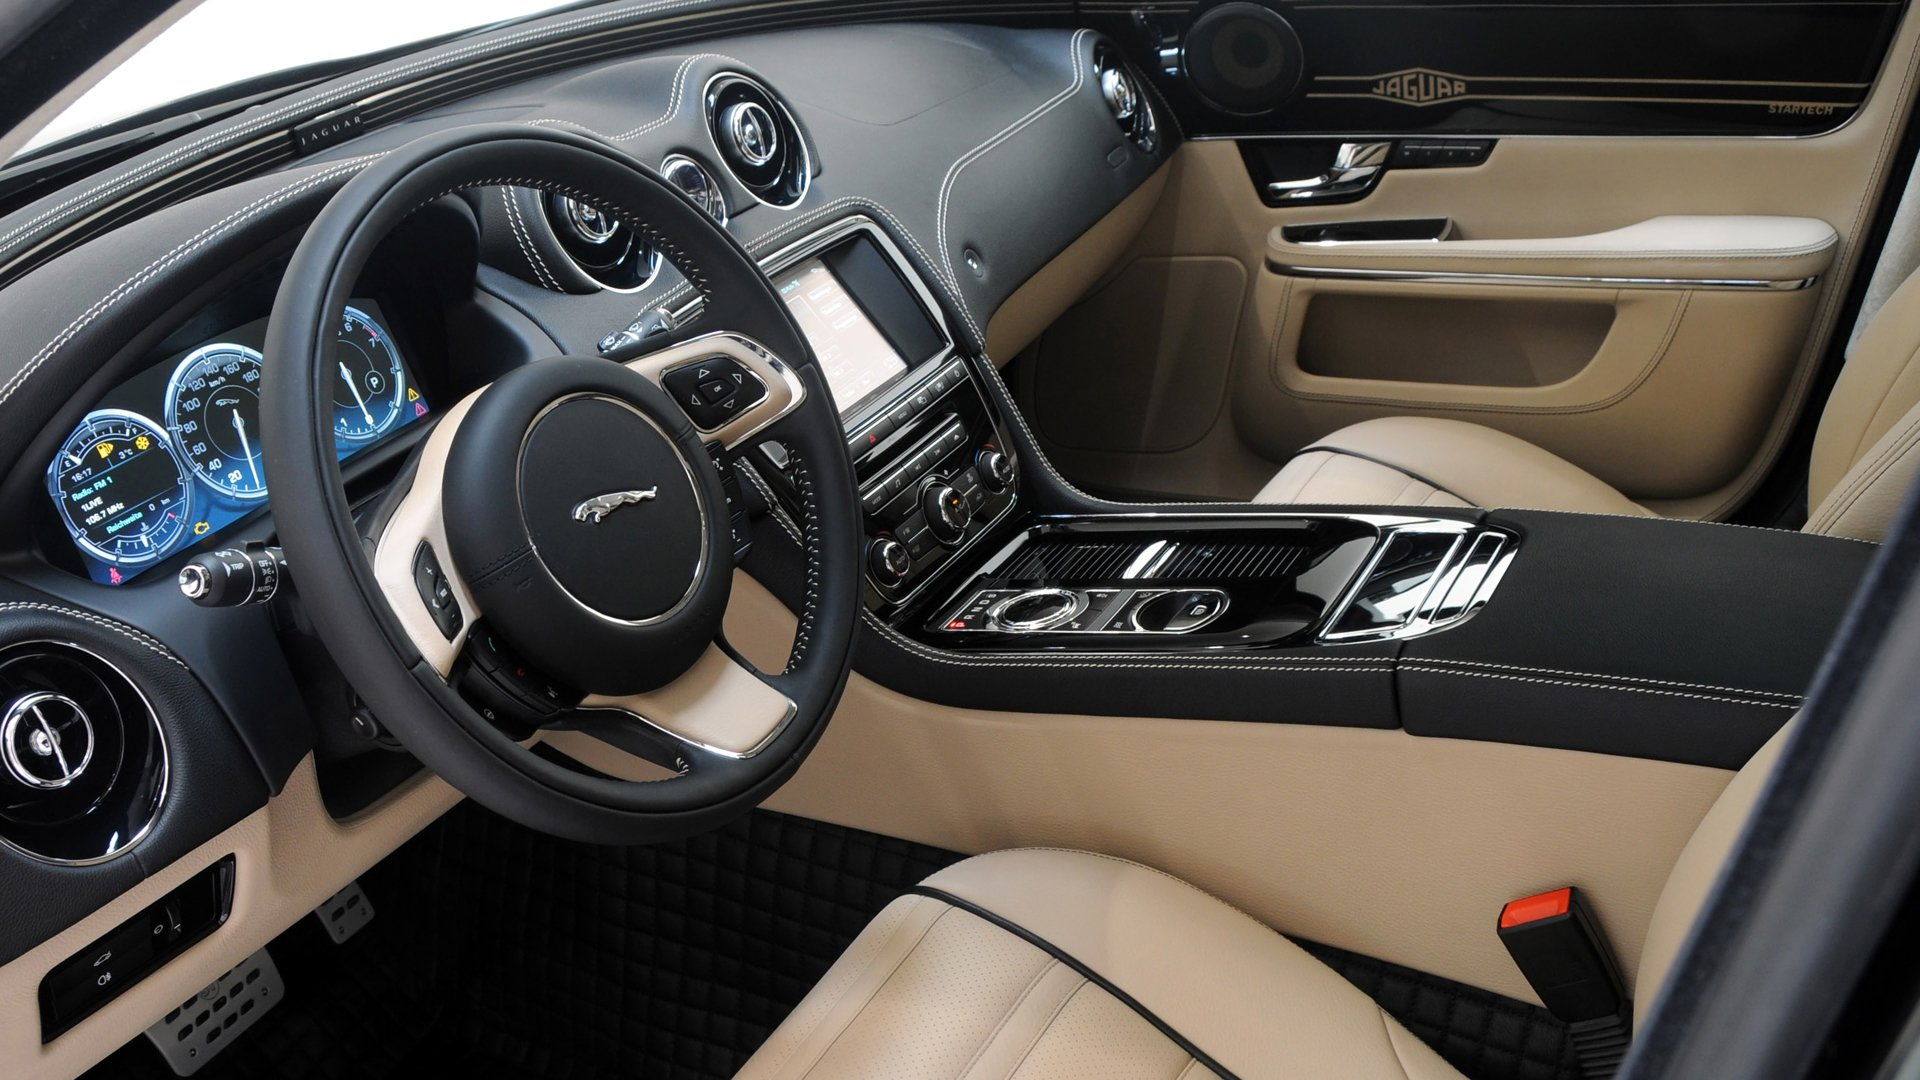 Interior Photos Jaguar XE 2019 HD